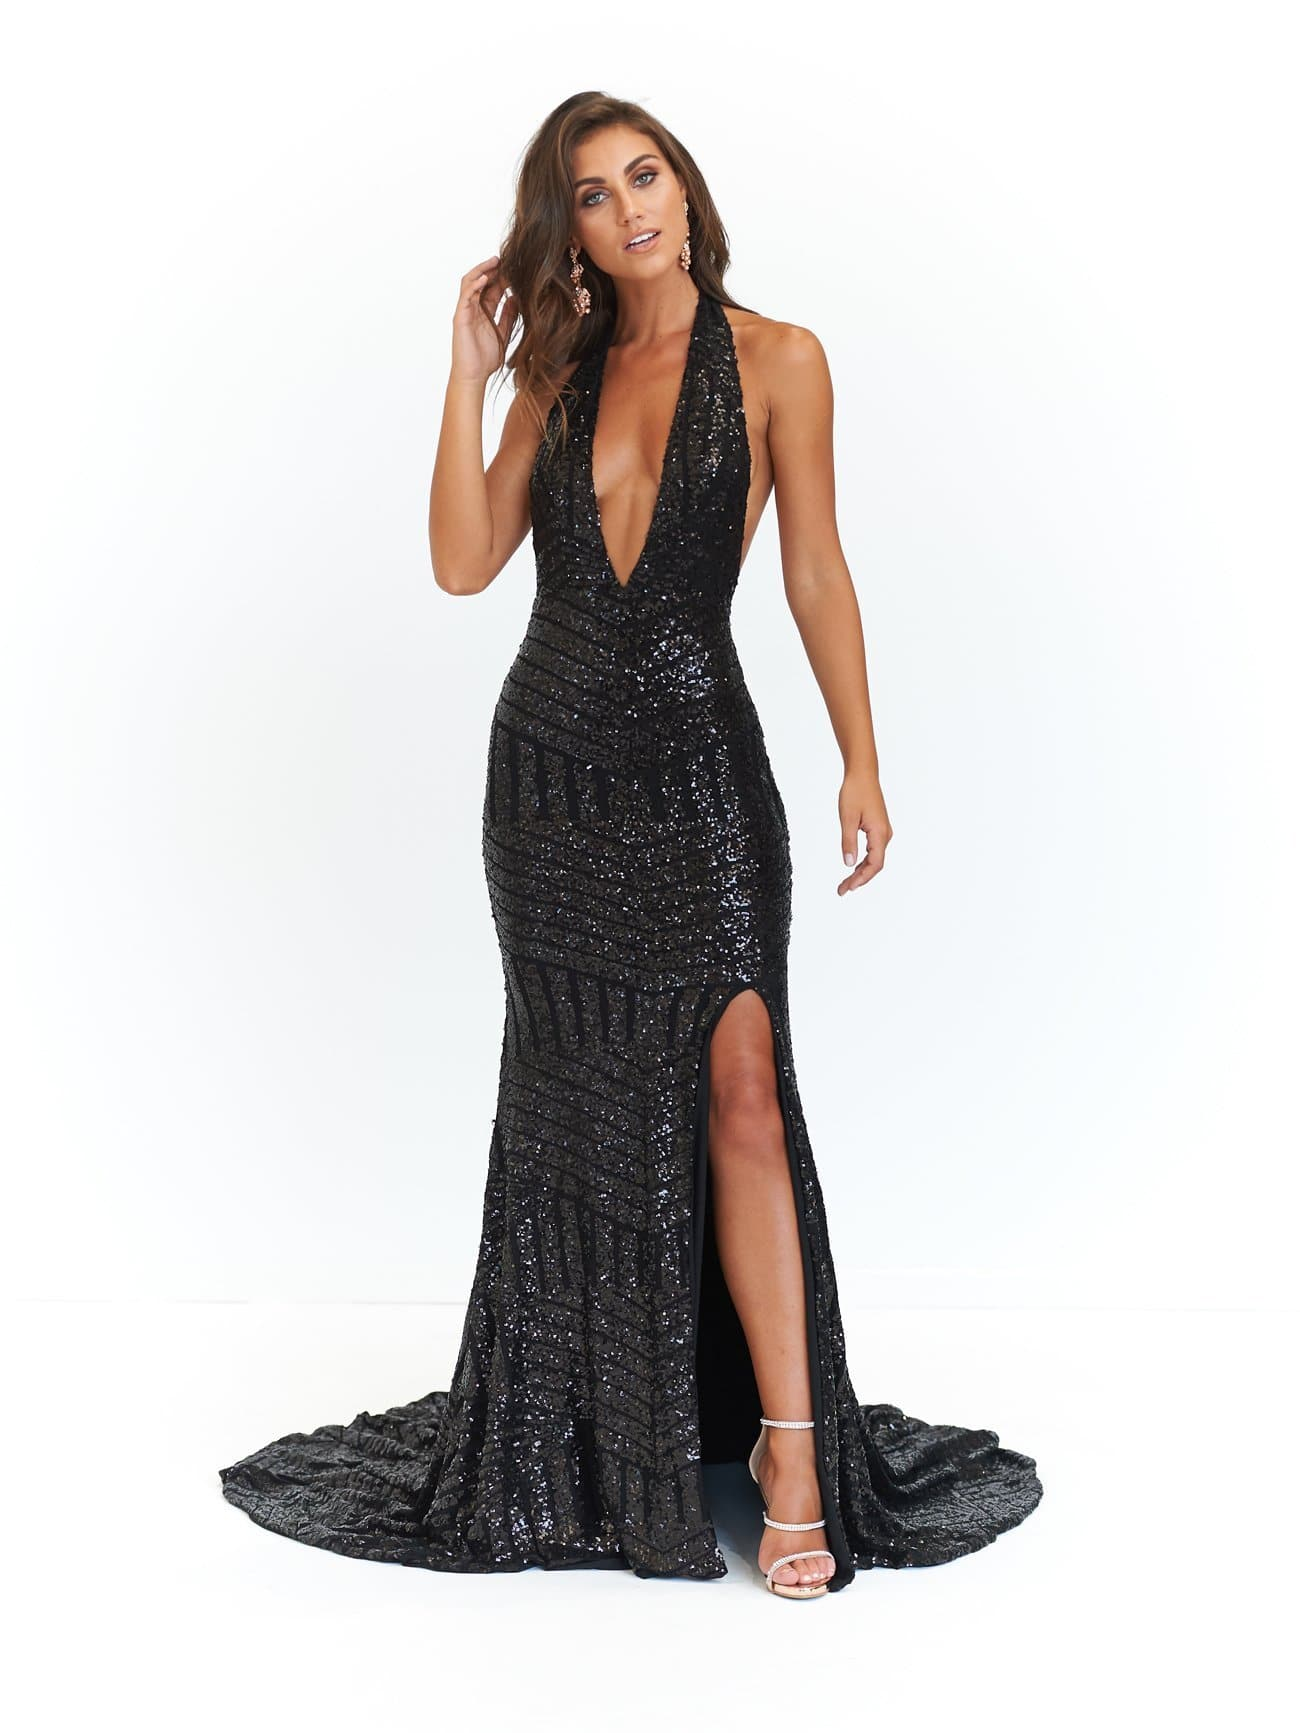 0a25a7cc155e A N Cleopatra - Backless Sequin Dress with Plunge Neck in Black ...